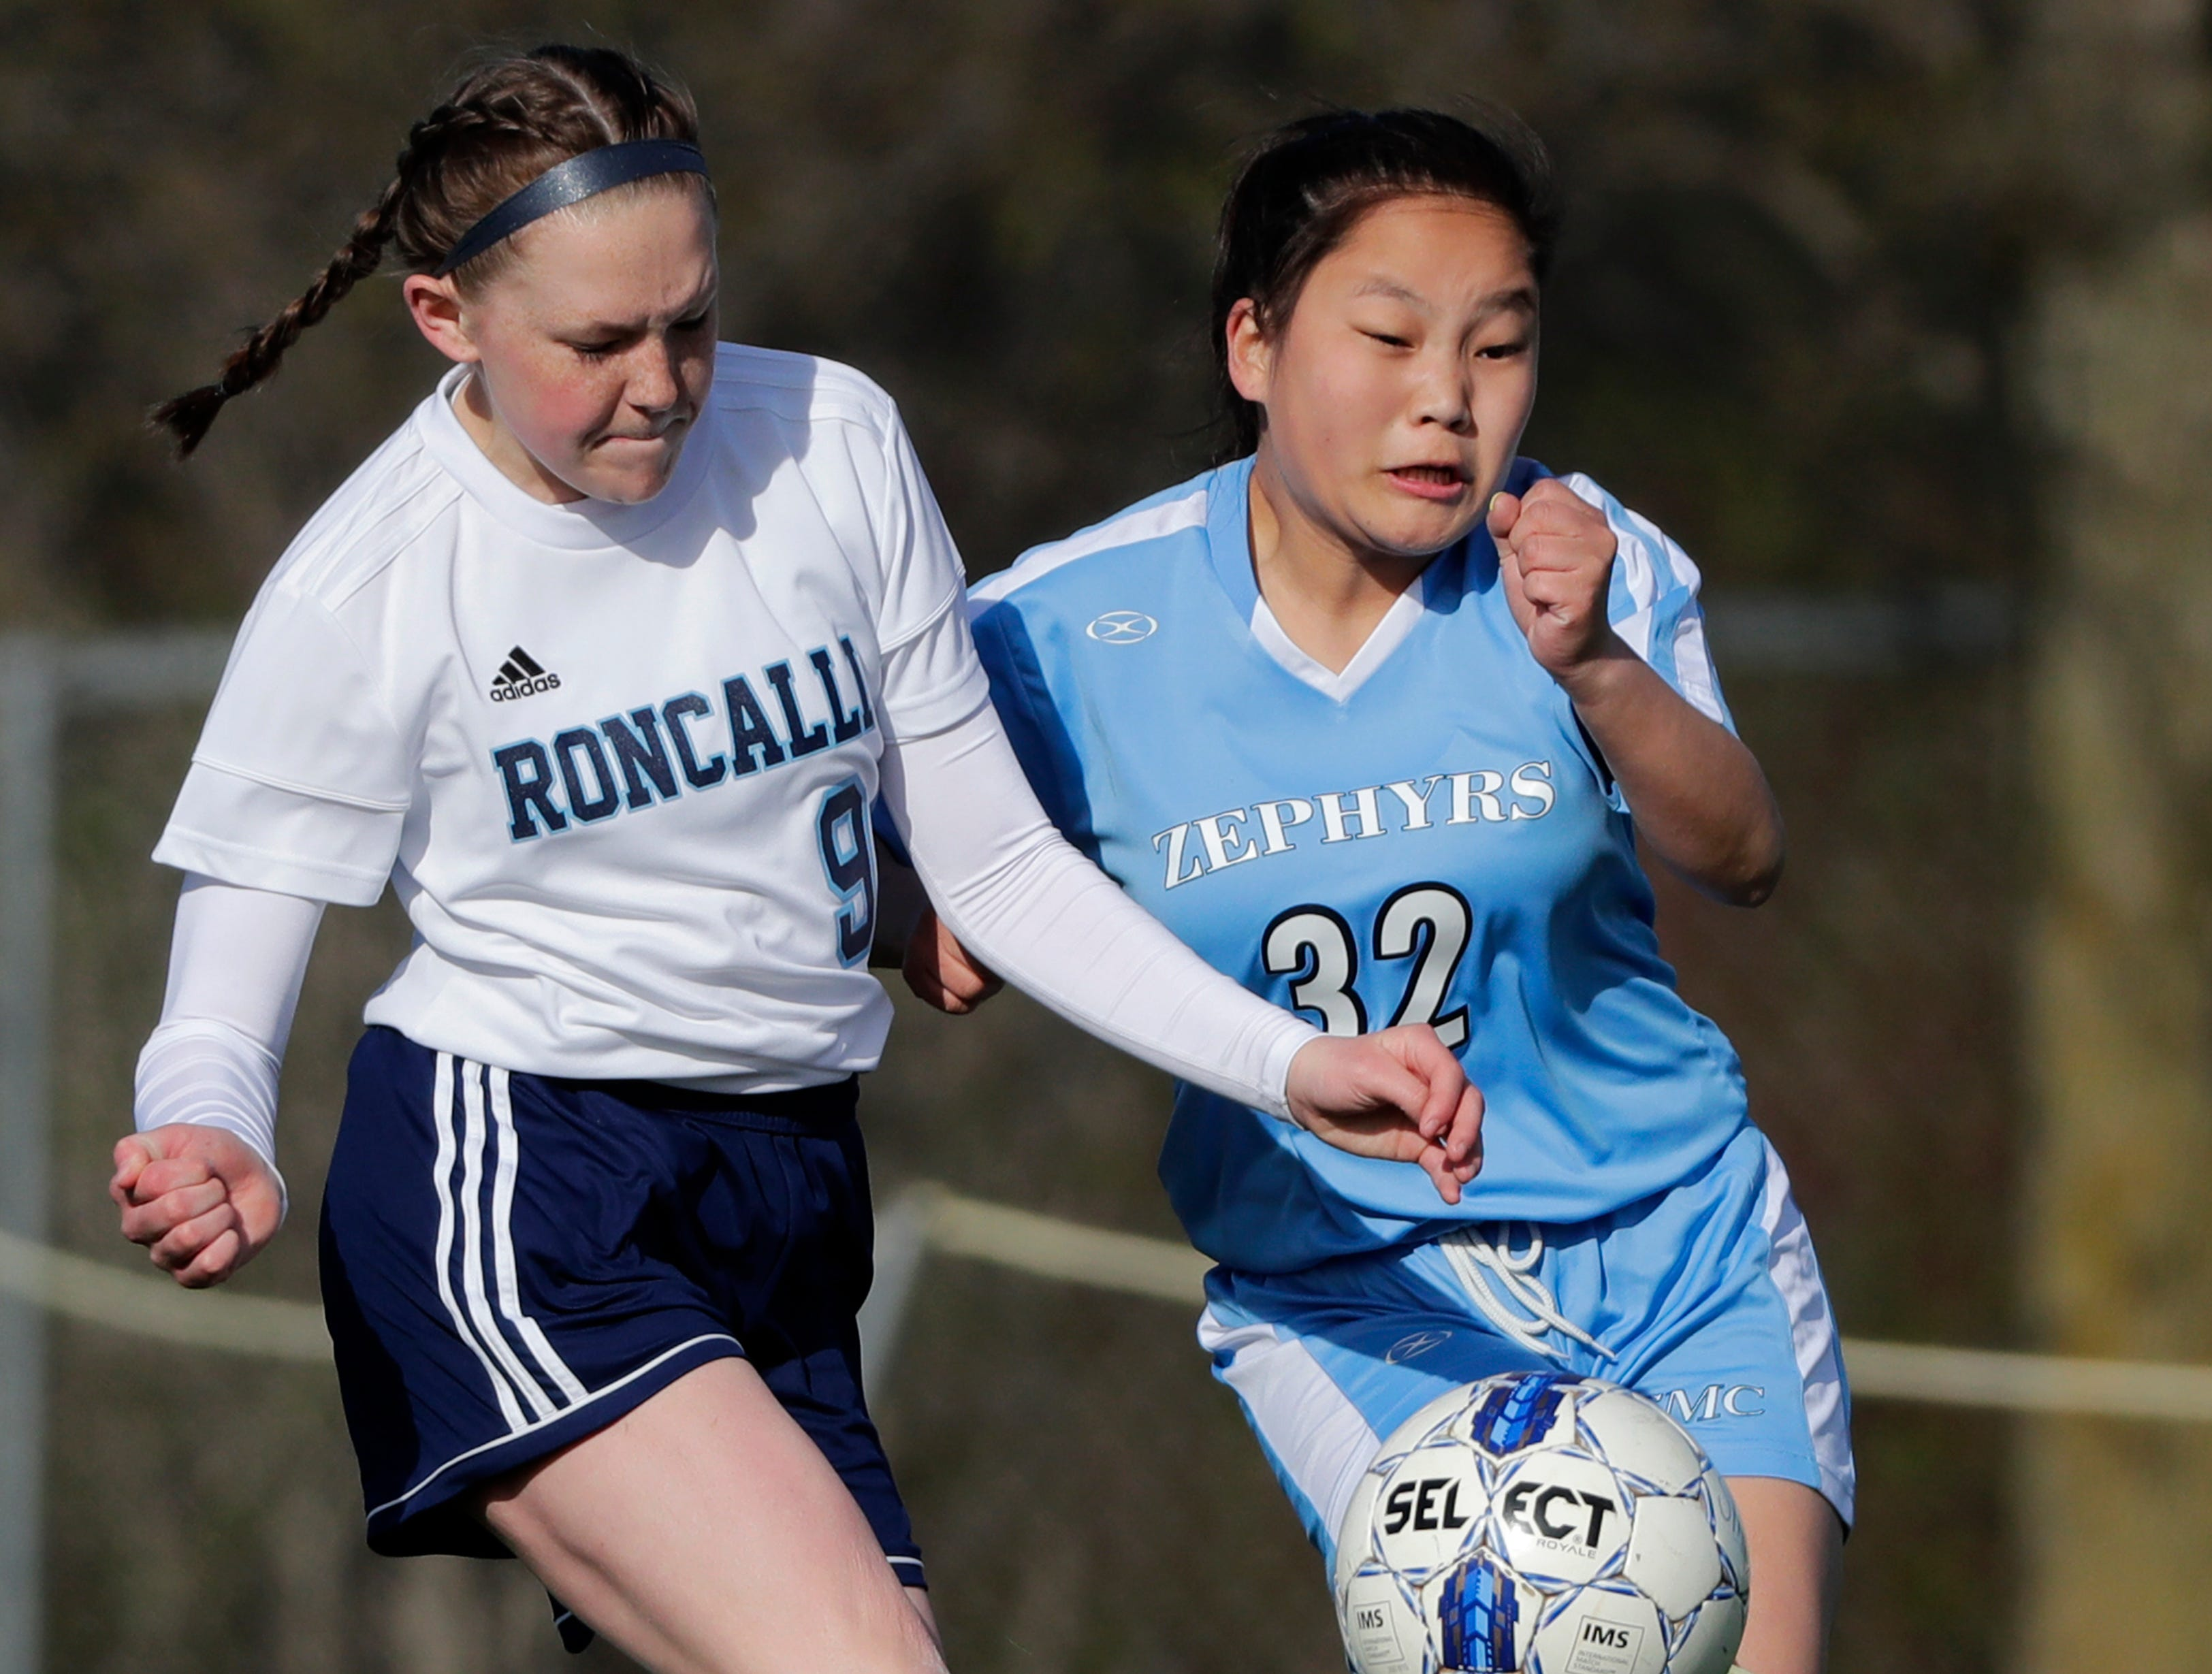 St. Mary Catholic High School's Agii Kerwin (32) takes a shot on goal against Roncalli High School's Natalie Putman (9) during their girls soccer game Tuesday, May 7, 2019, in Fox Crossing, Wis. 